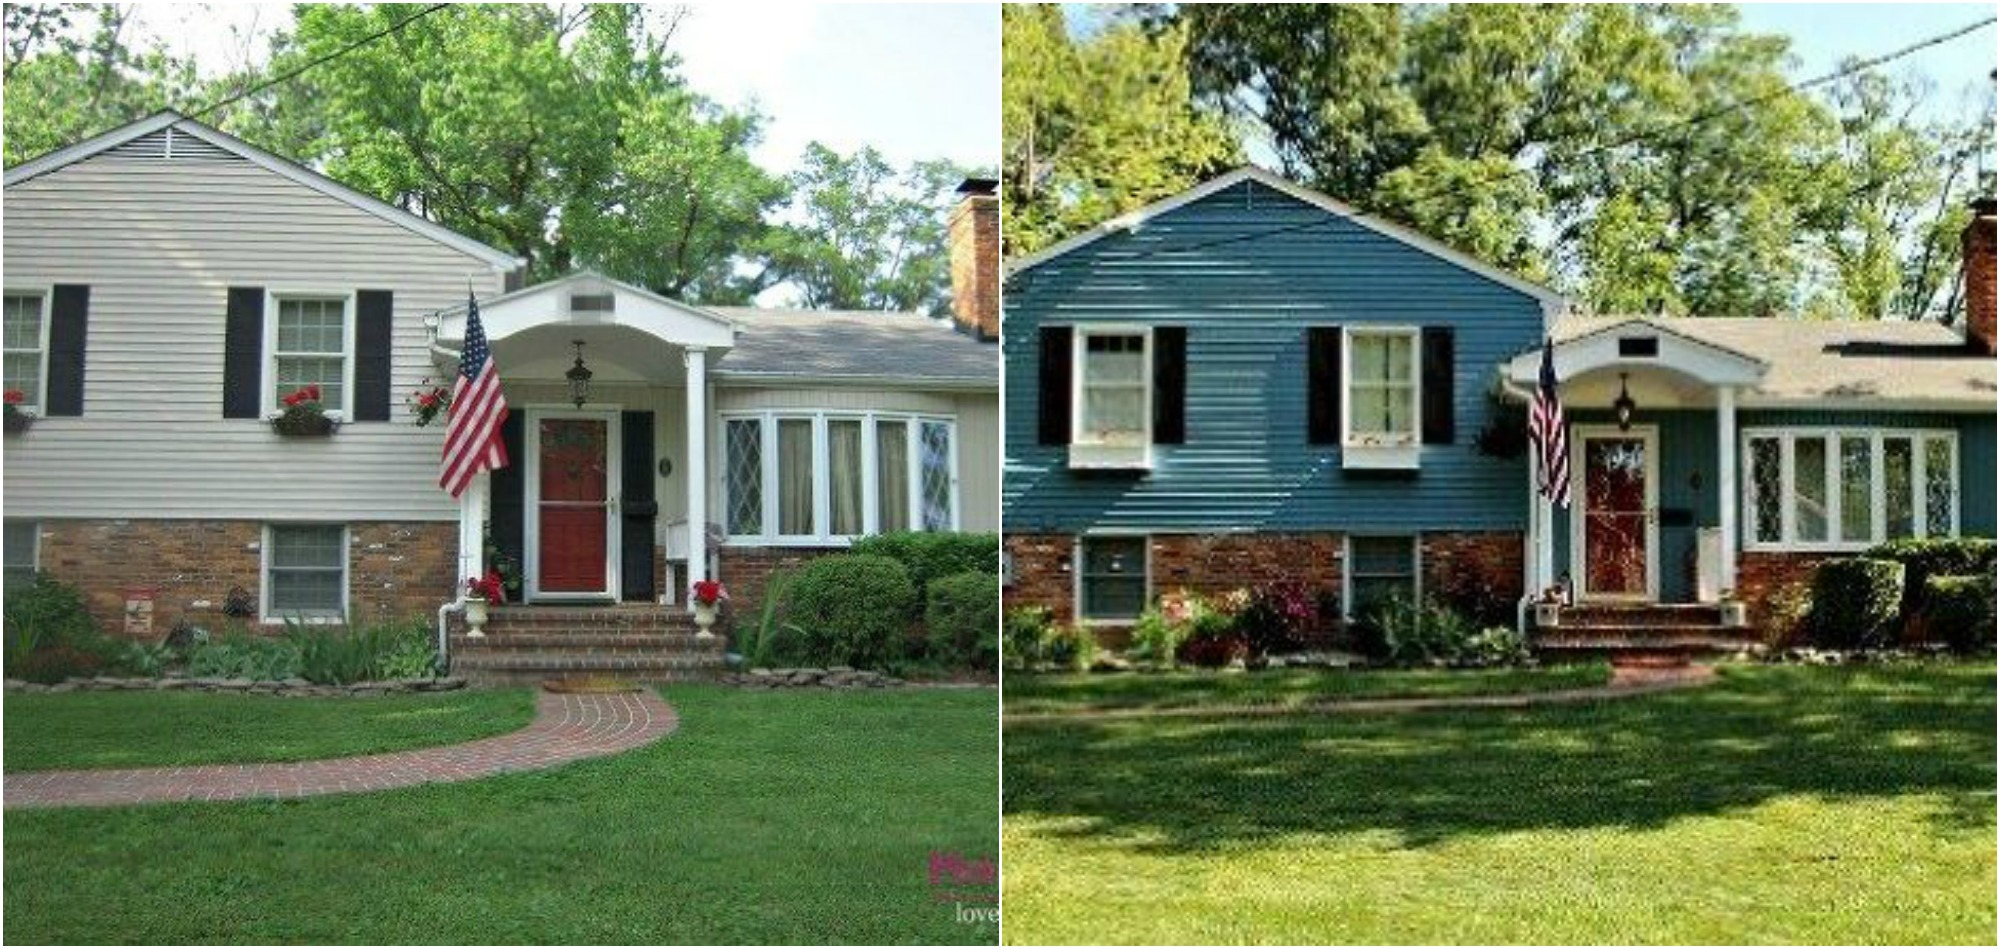 9 incredible home exterior makeovers coldwell banker for Home exterior makeover ideas